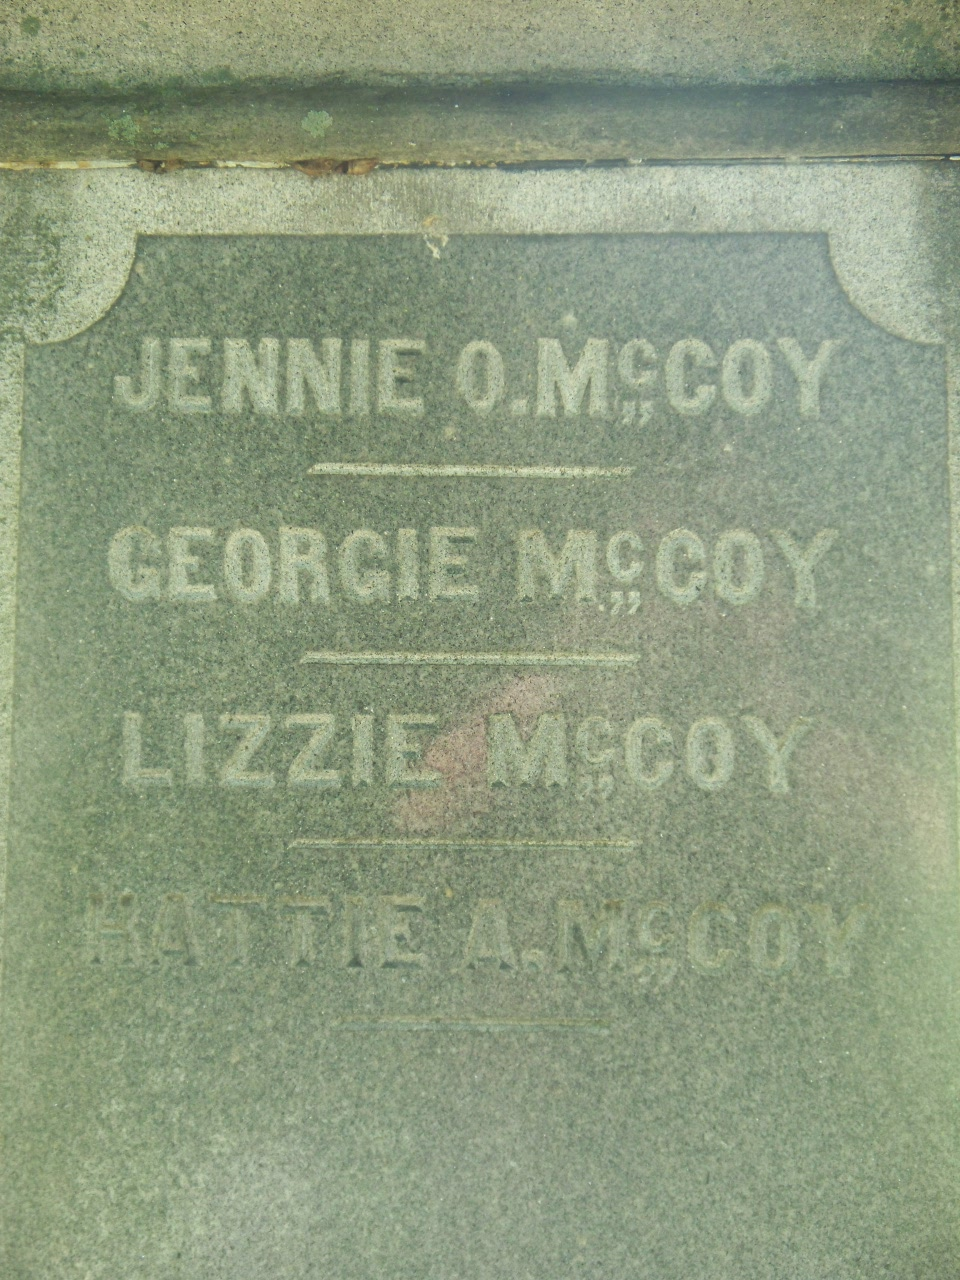 Minnie McCoy